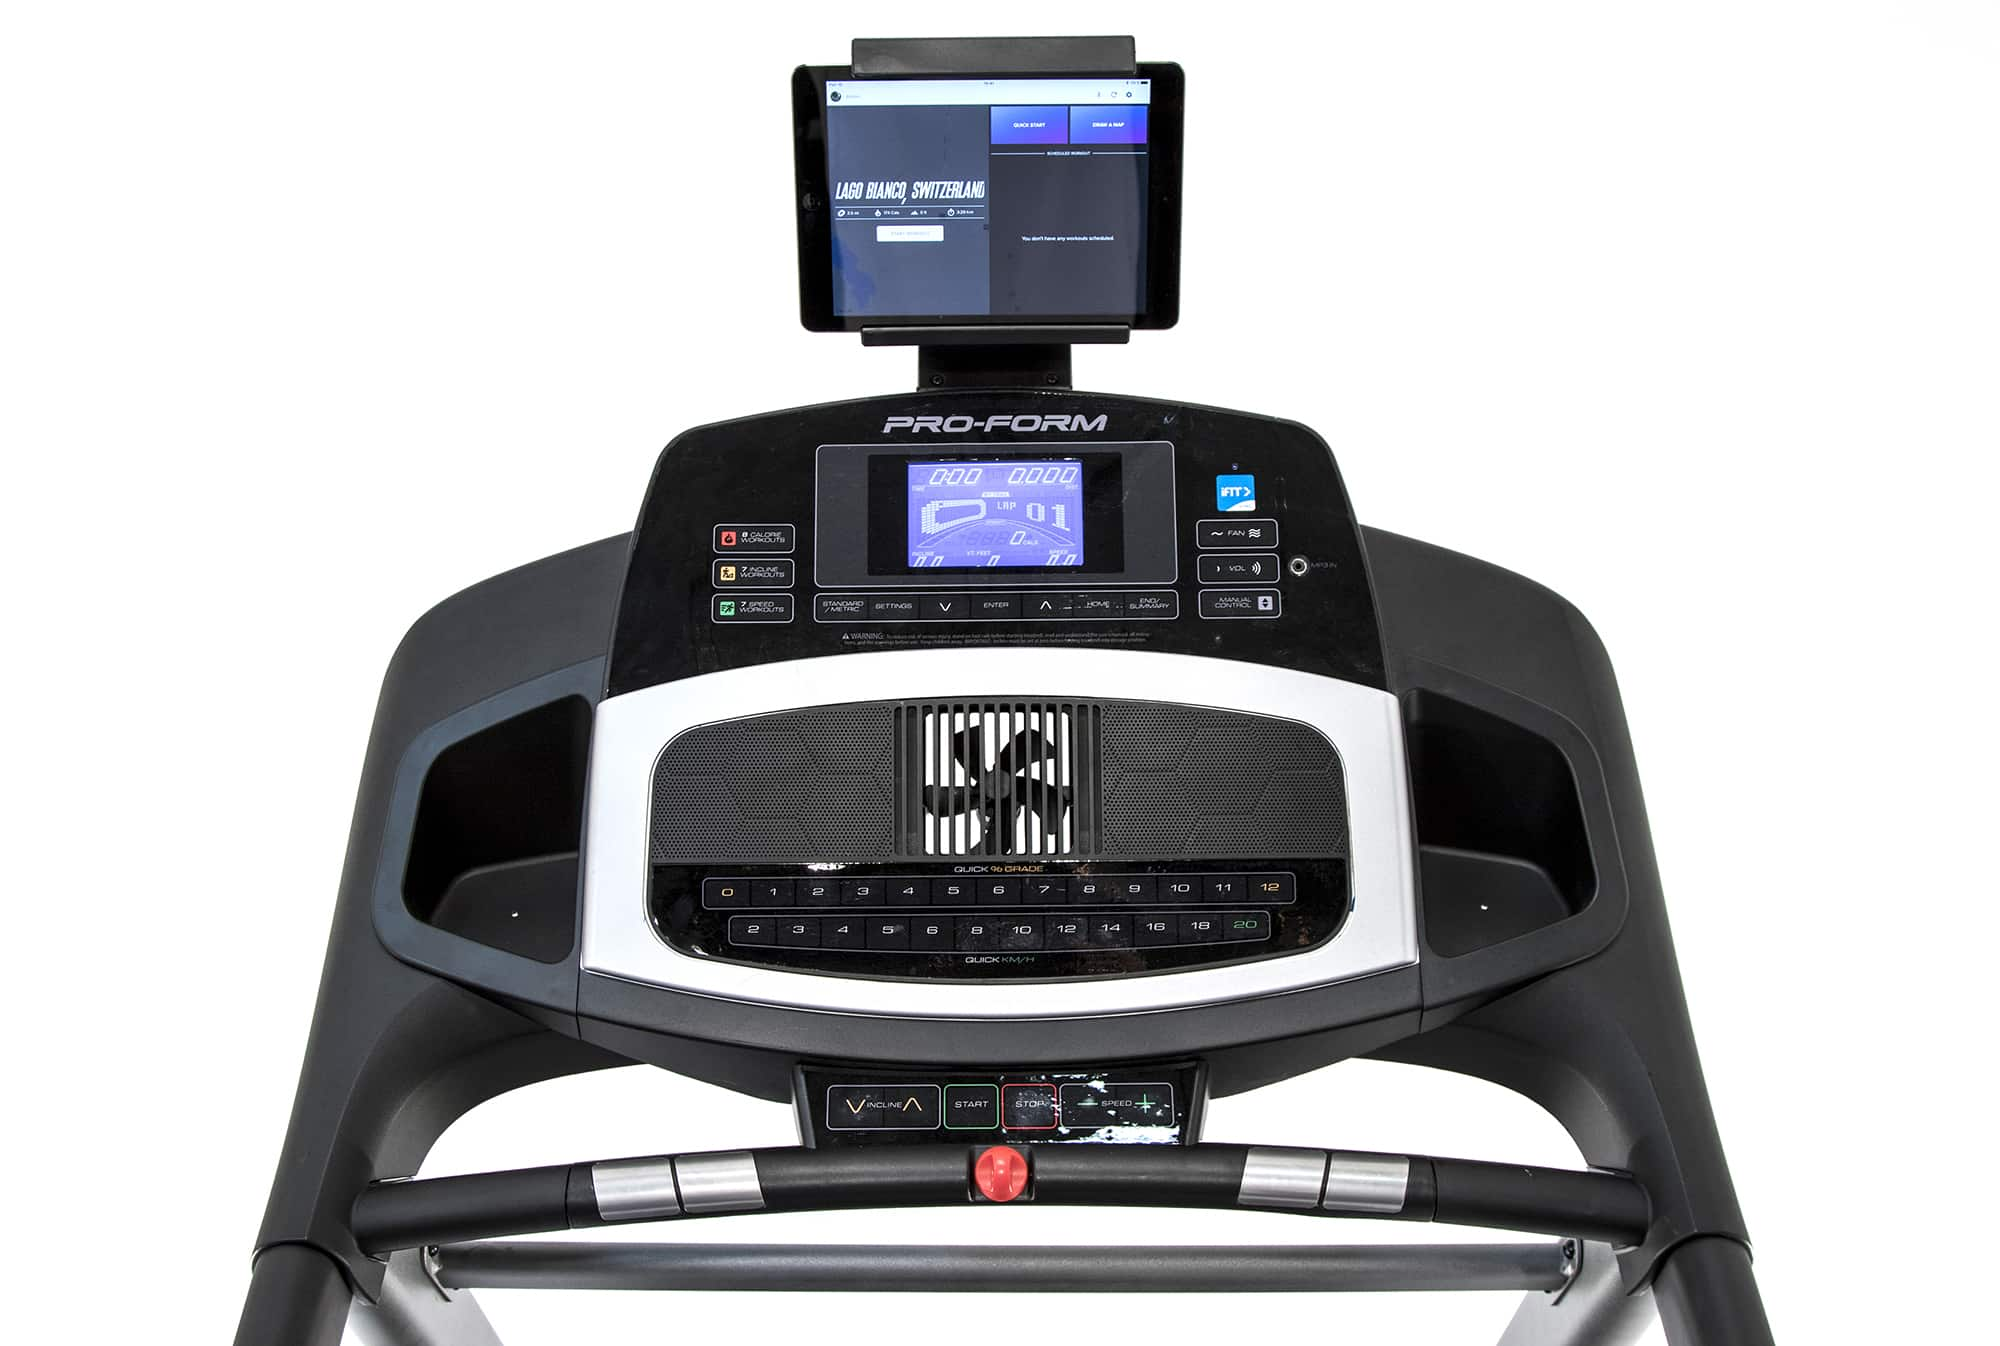 Proform Treadmills Power 795i  gallery image 4